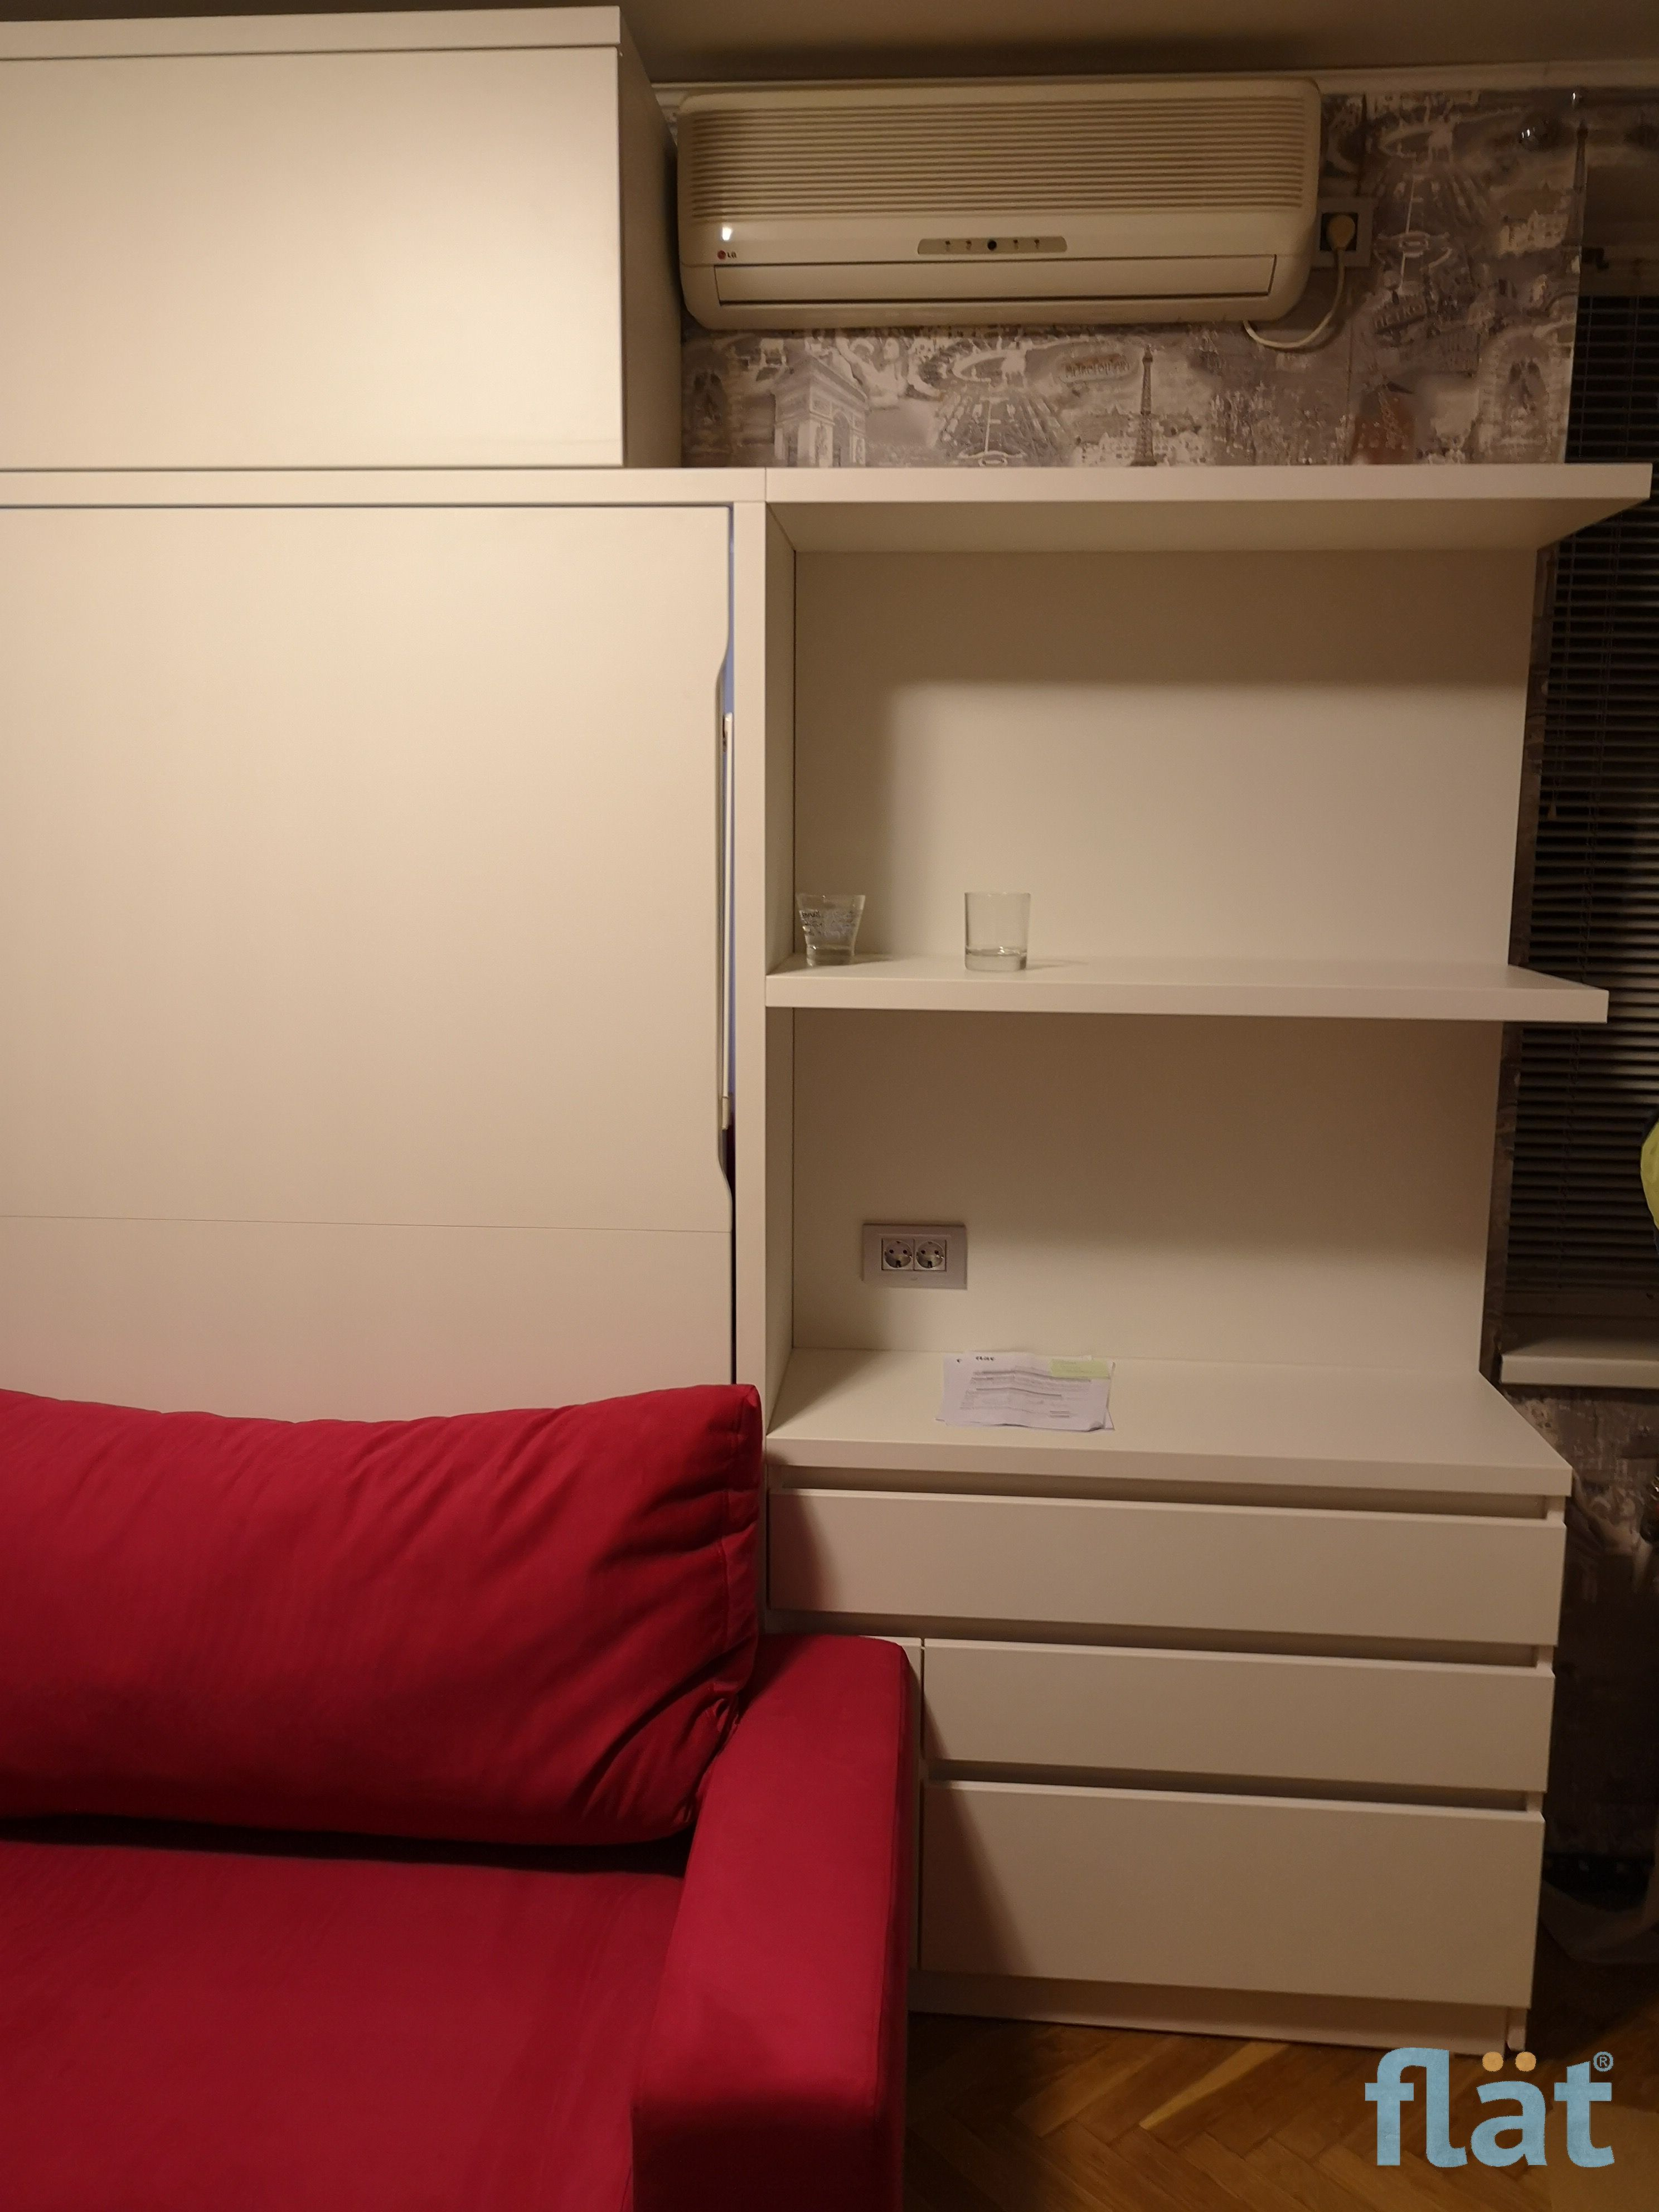 Horizontal Queen size wall bed with storage